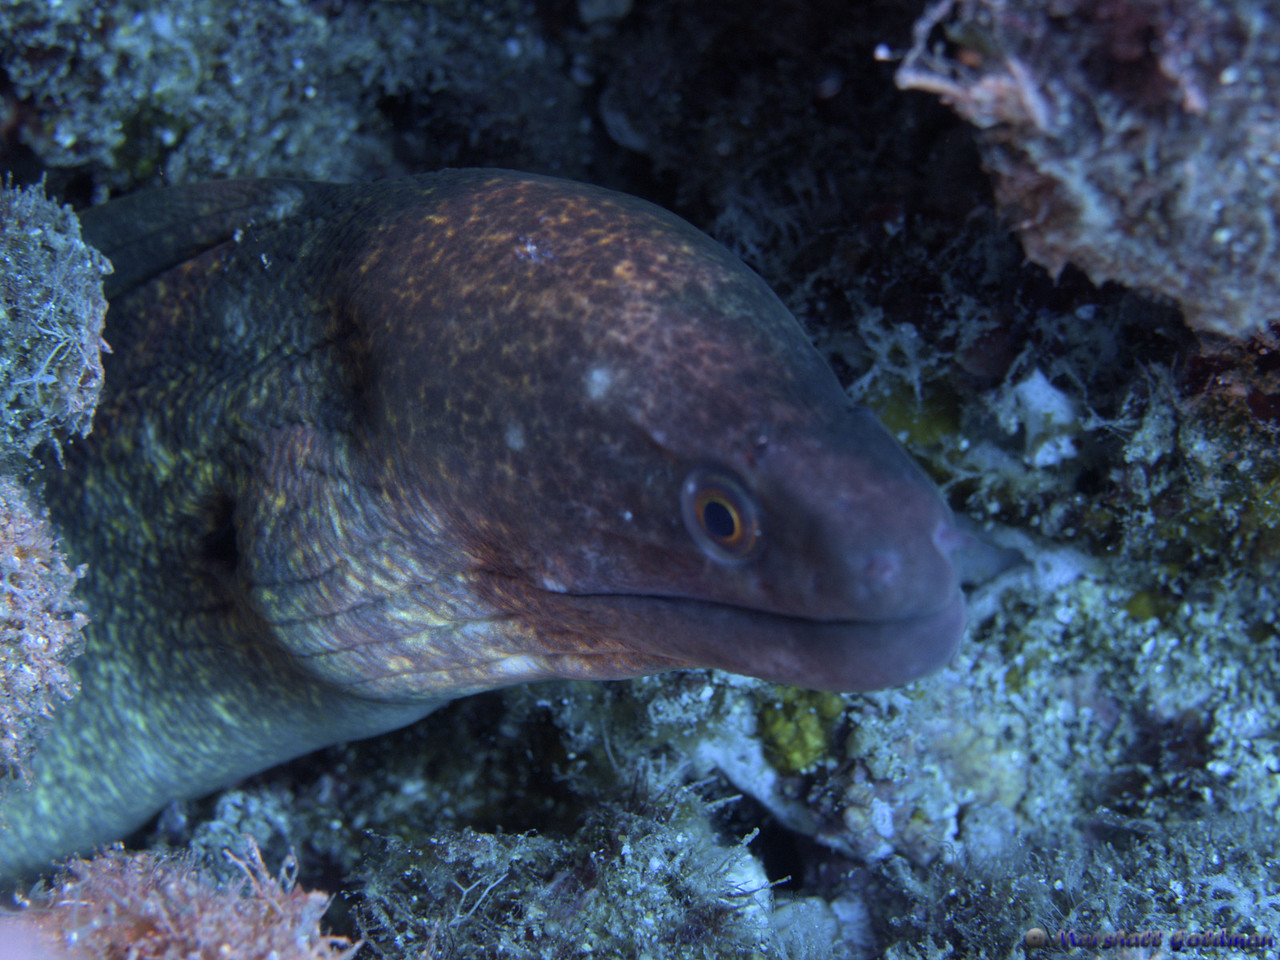 This yellowmargin moray shared his hole with a whitemouth moray - the first time that I have seen two morays 'living' with each other...